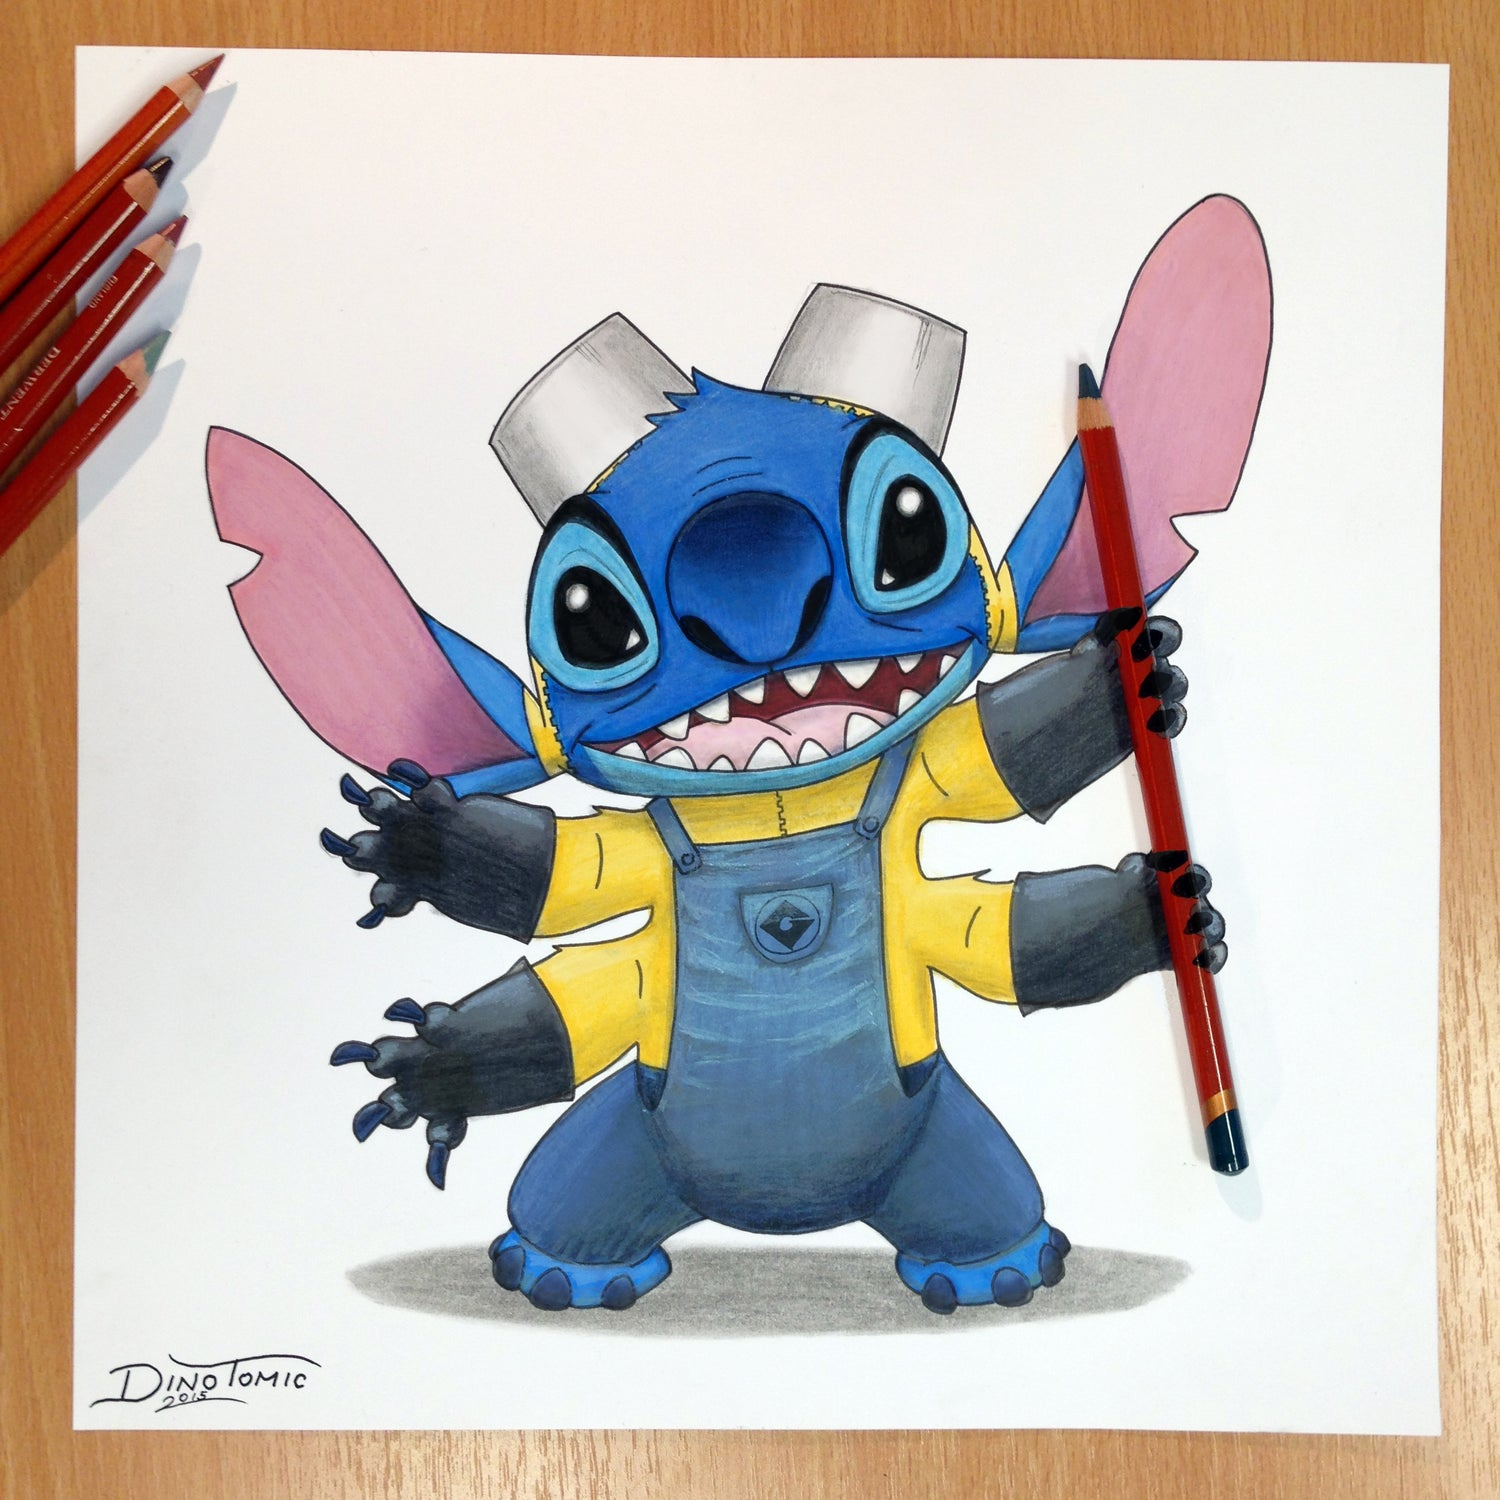 Image of #37 Stitch